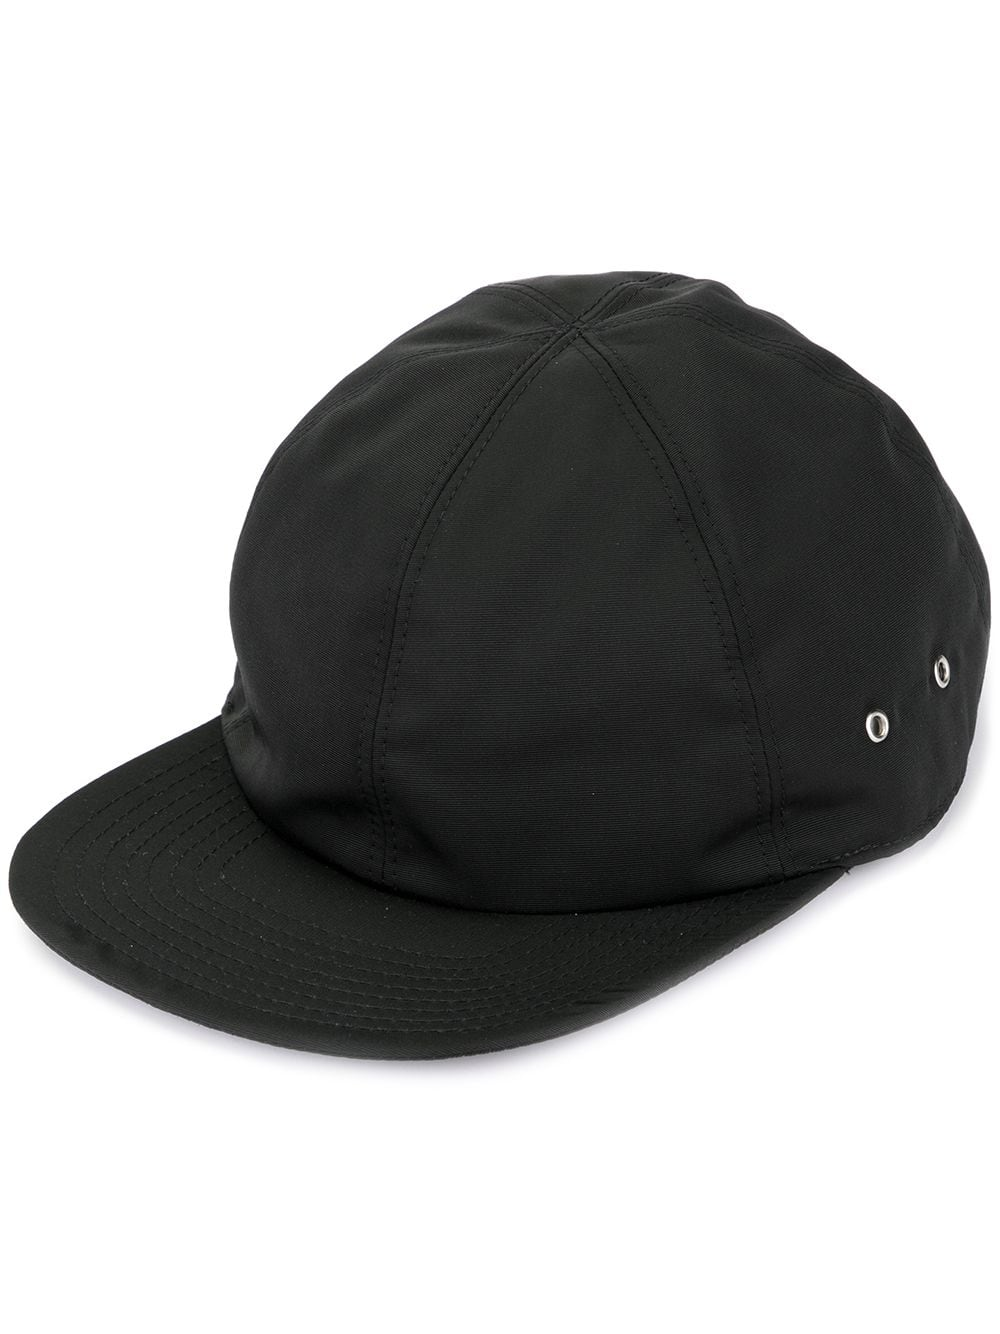 1017 ALYX 9SM MEN BASEBALL CAP WITH BUCKLE